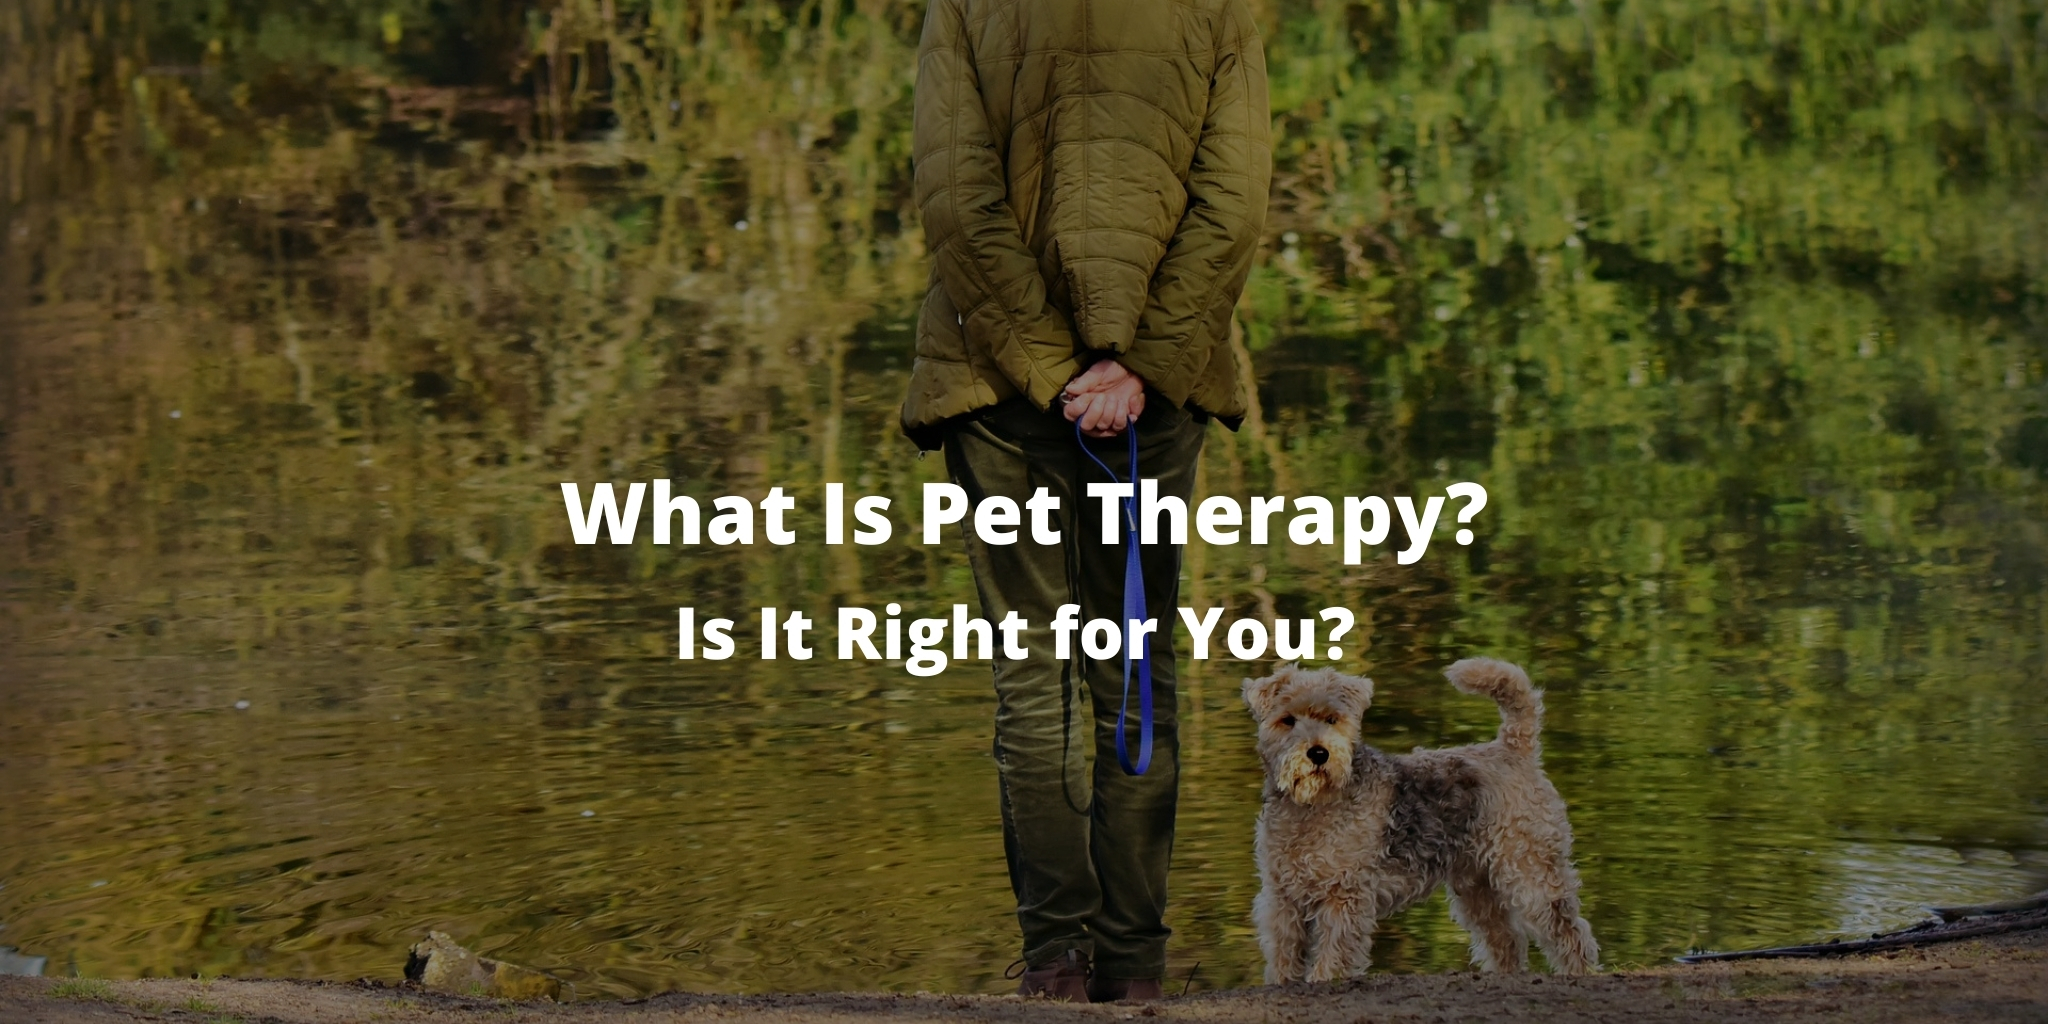 What Is Pet Therapy? Is It Right for You?